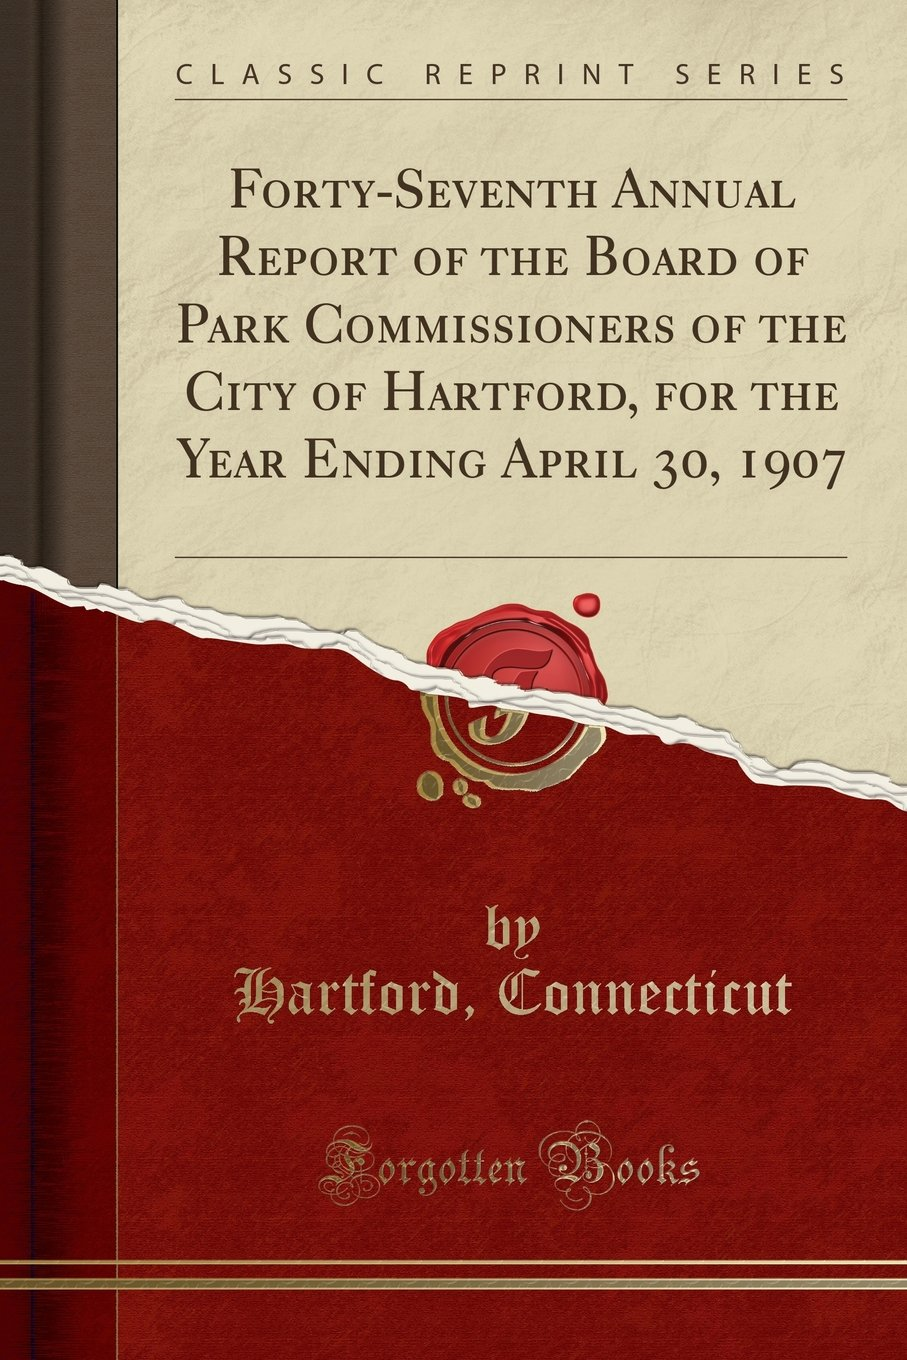 Download Forty-Seventh Annual Report of the Board of Park Commissioners of the City of Hartford, for the Year Ending April 30, 1907 (Classic Reprint) ebook